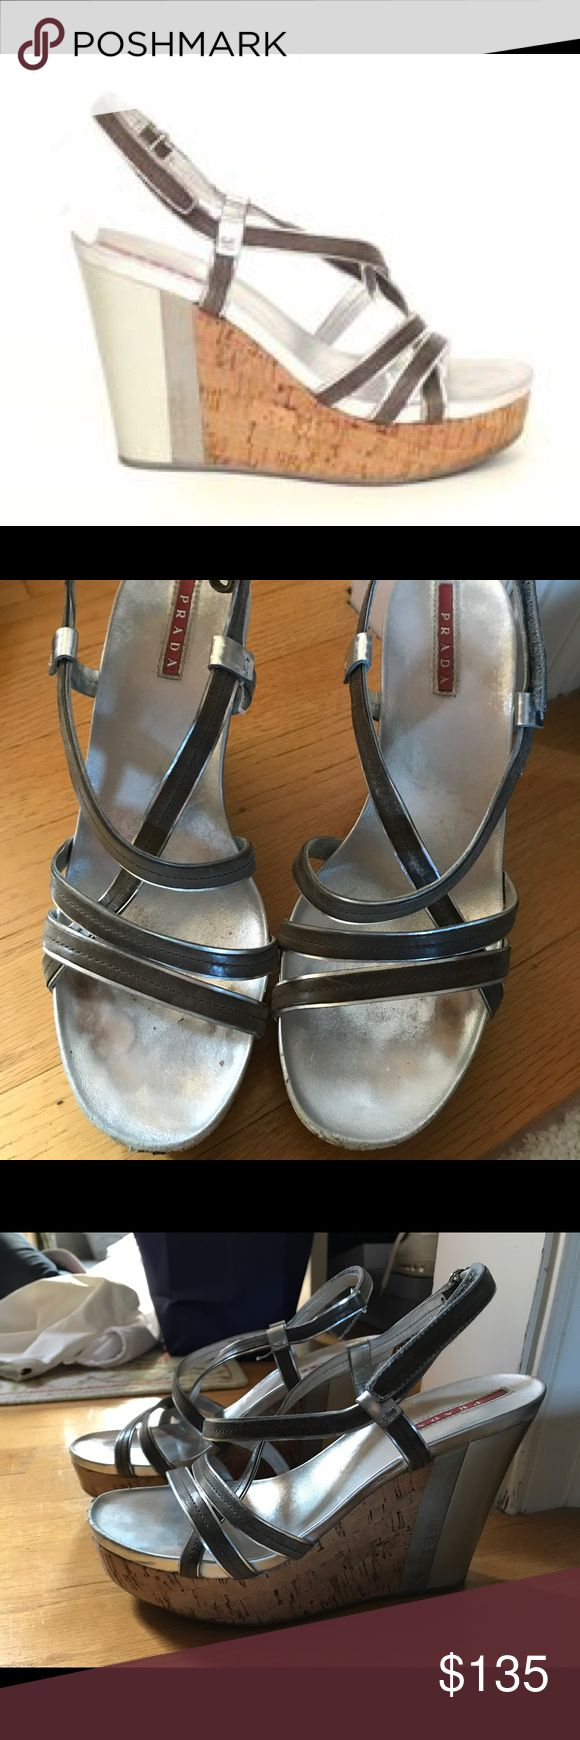 """Prada wedge sandals (size 38 1/2) Prada silver wedge sandals. Heel is 4 1/2"""". Worn a lot (they are so comfortable) so shoes have normal wear and tear but no real damage. Sold with shoe bags and box. Prada Shoes Wedges"""